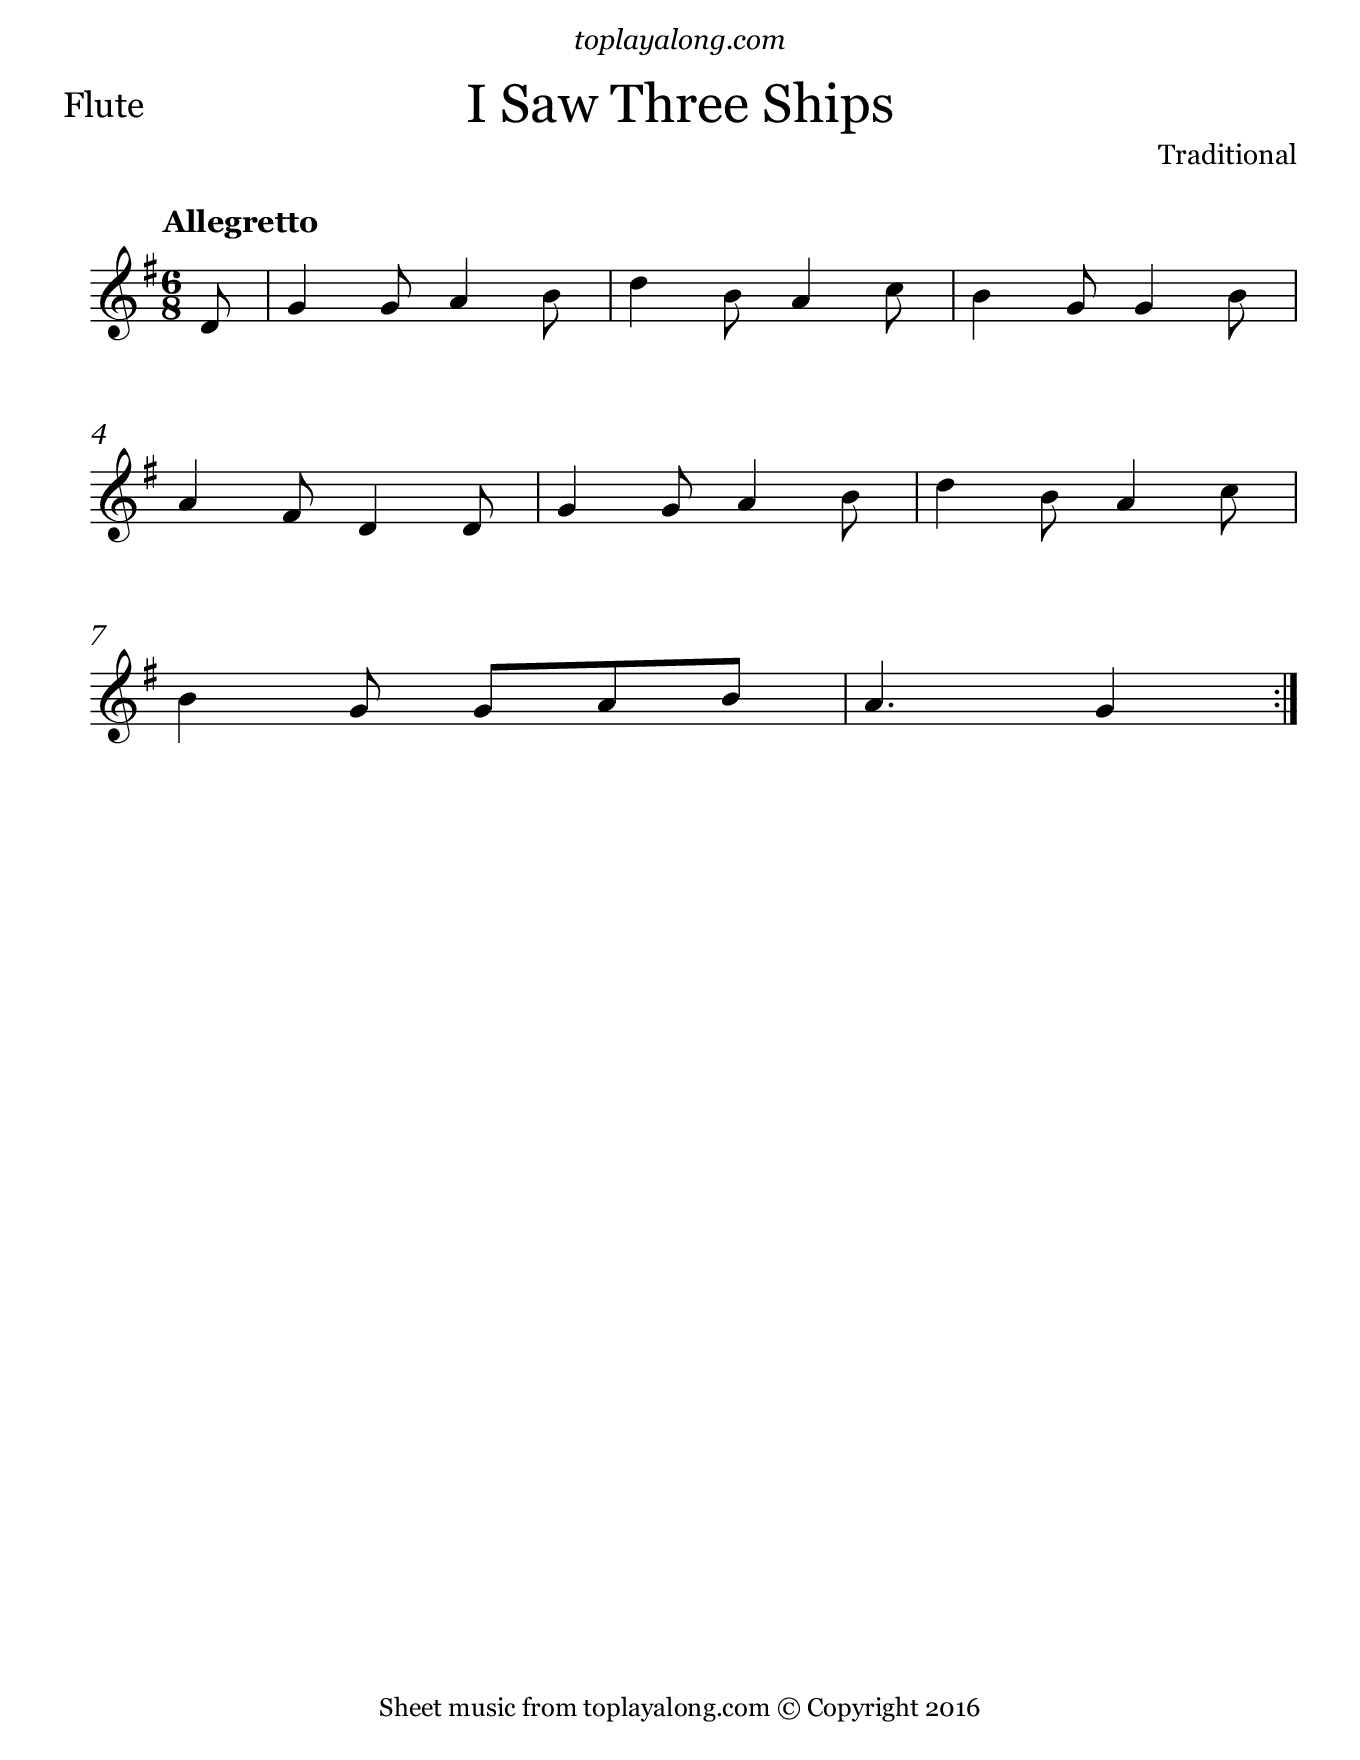 I Saw Three Ships. Sheet music for Flute, page 1.